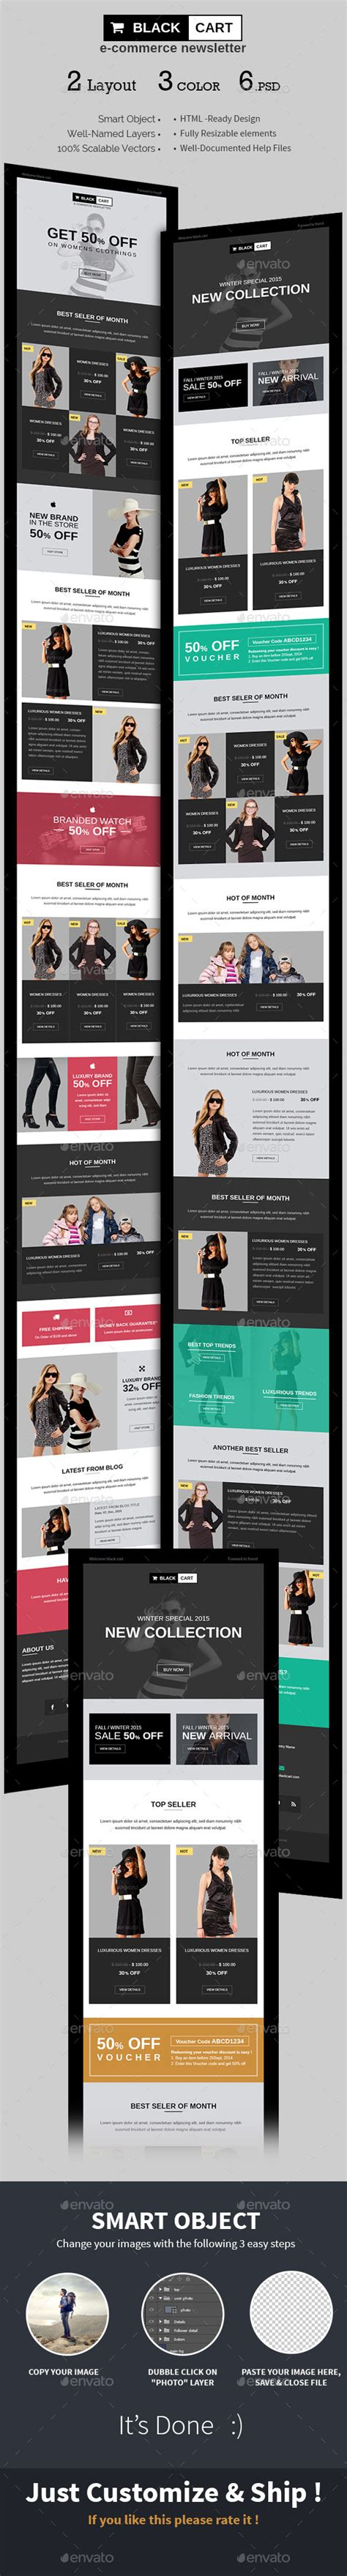 photoshop template offer e commerce special offers newsletter psd template